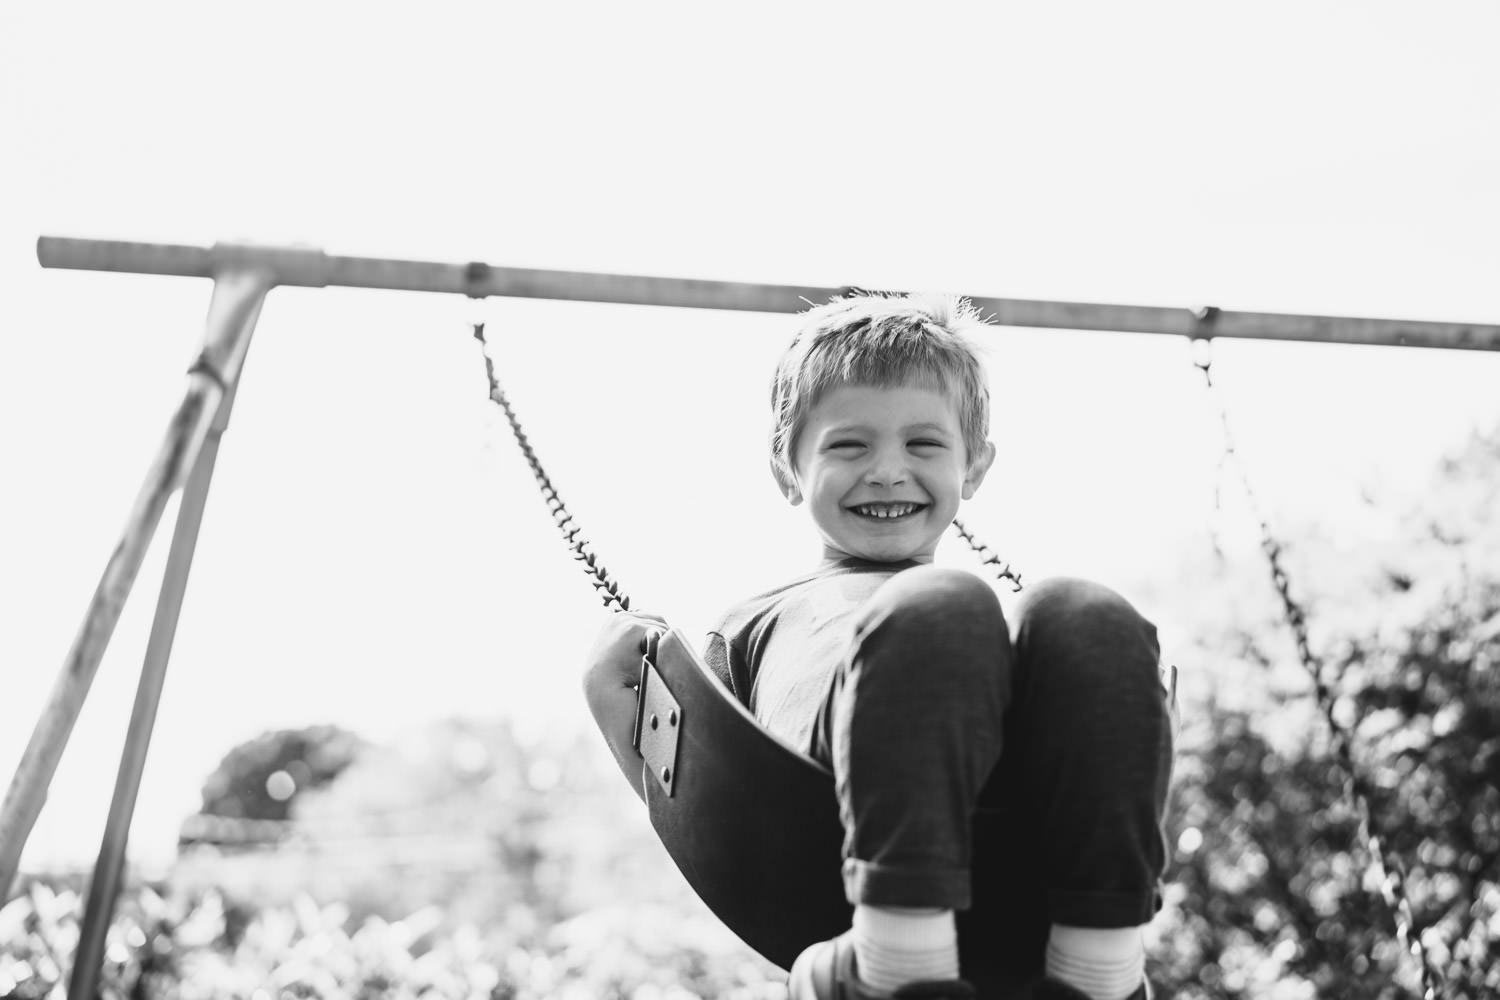 A little boy swings on a swing.